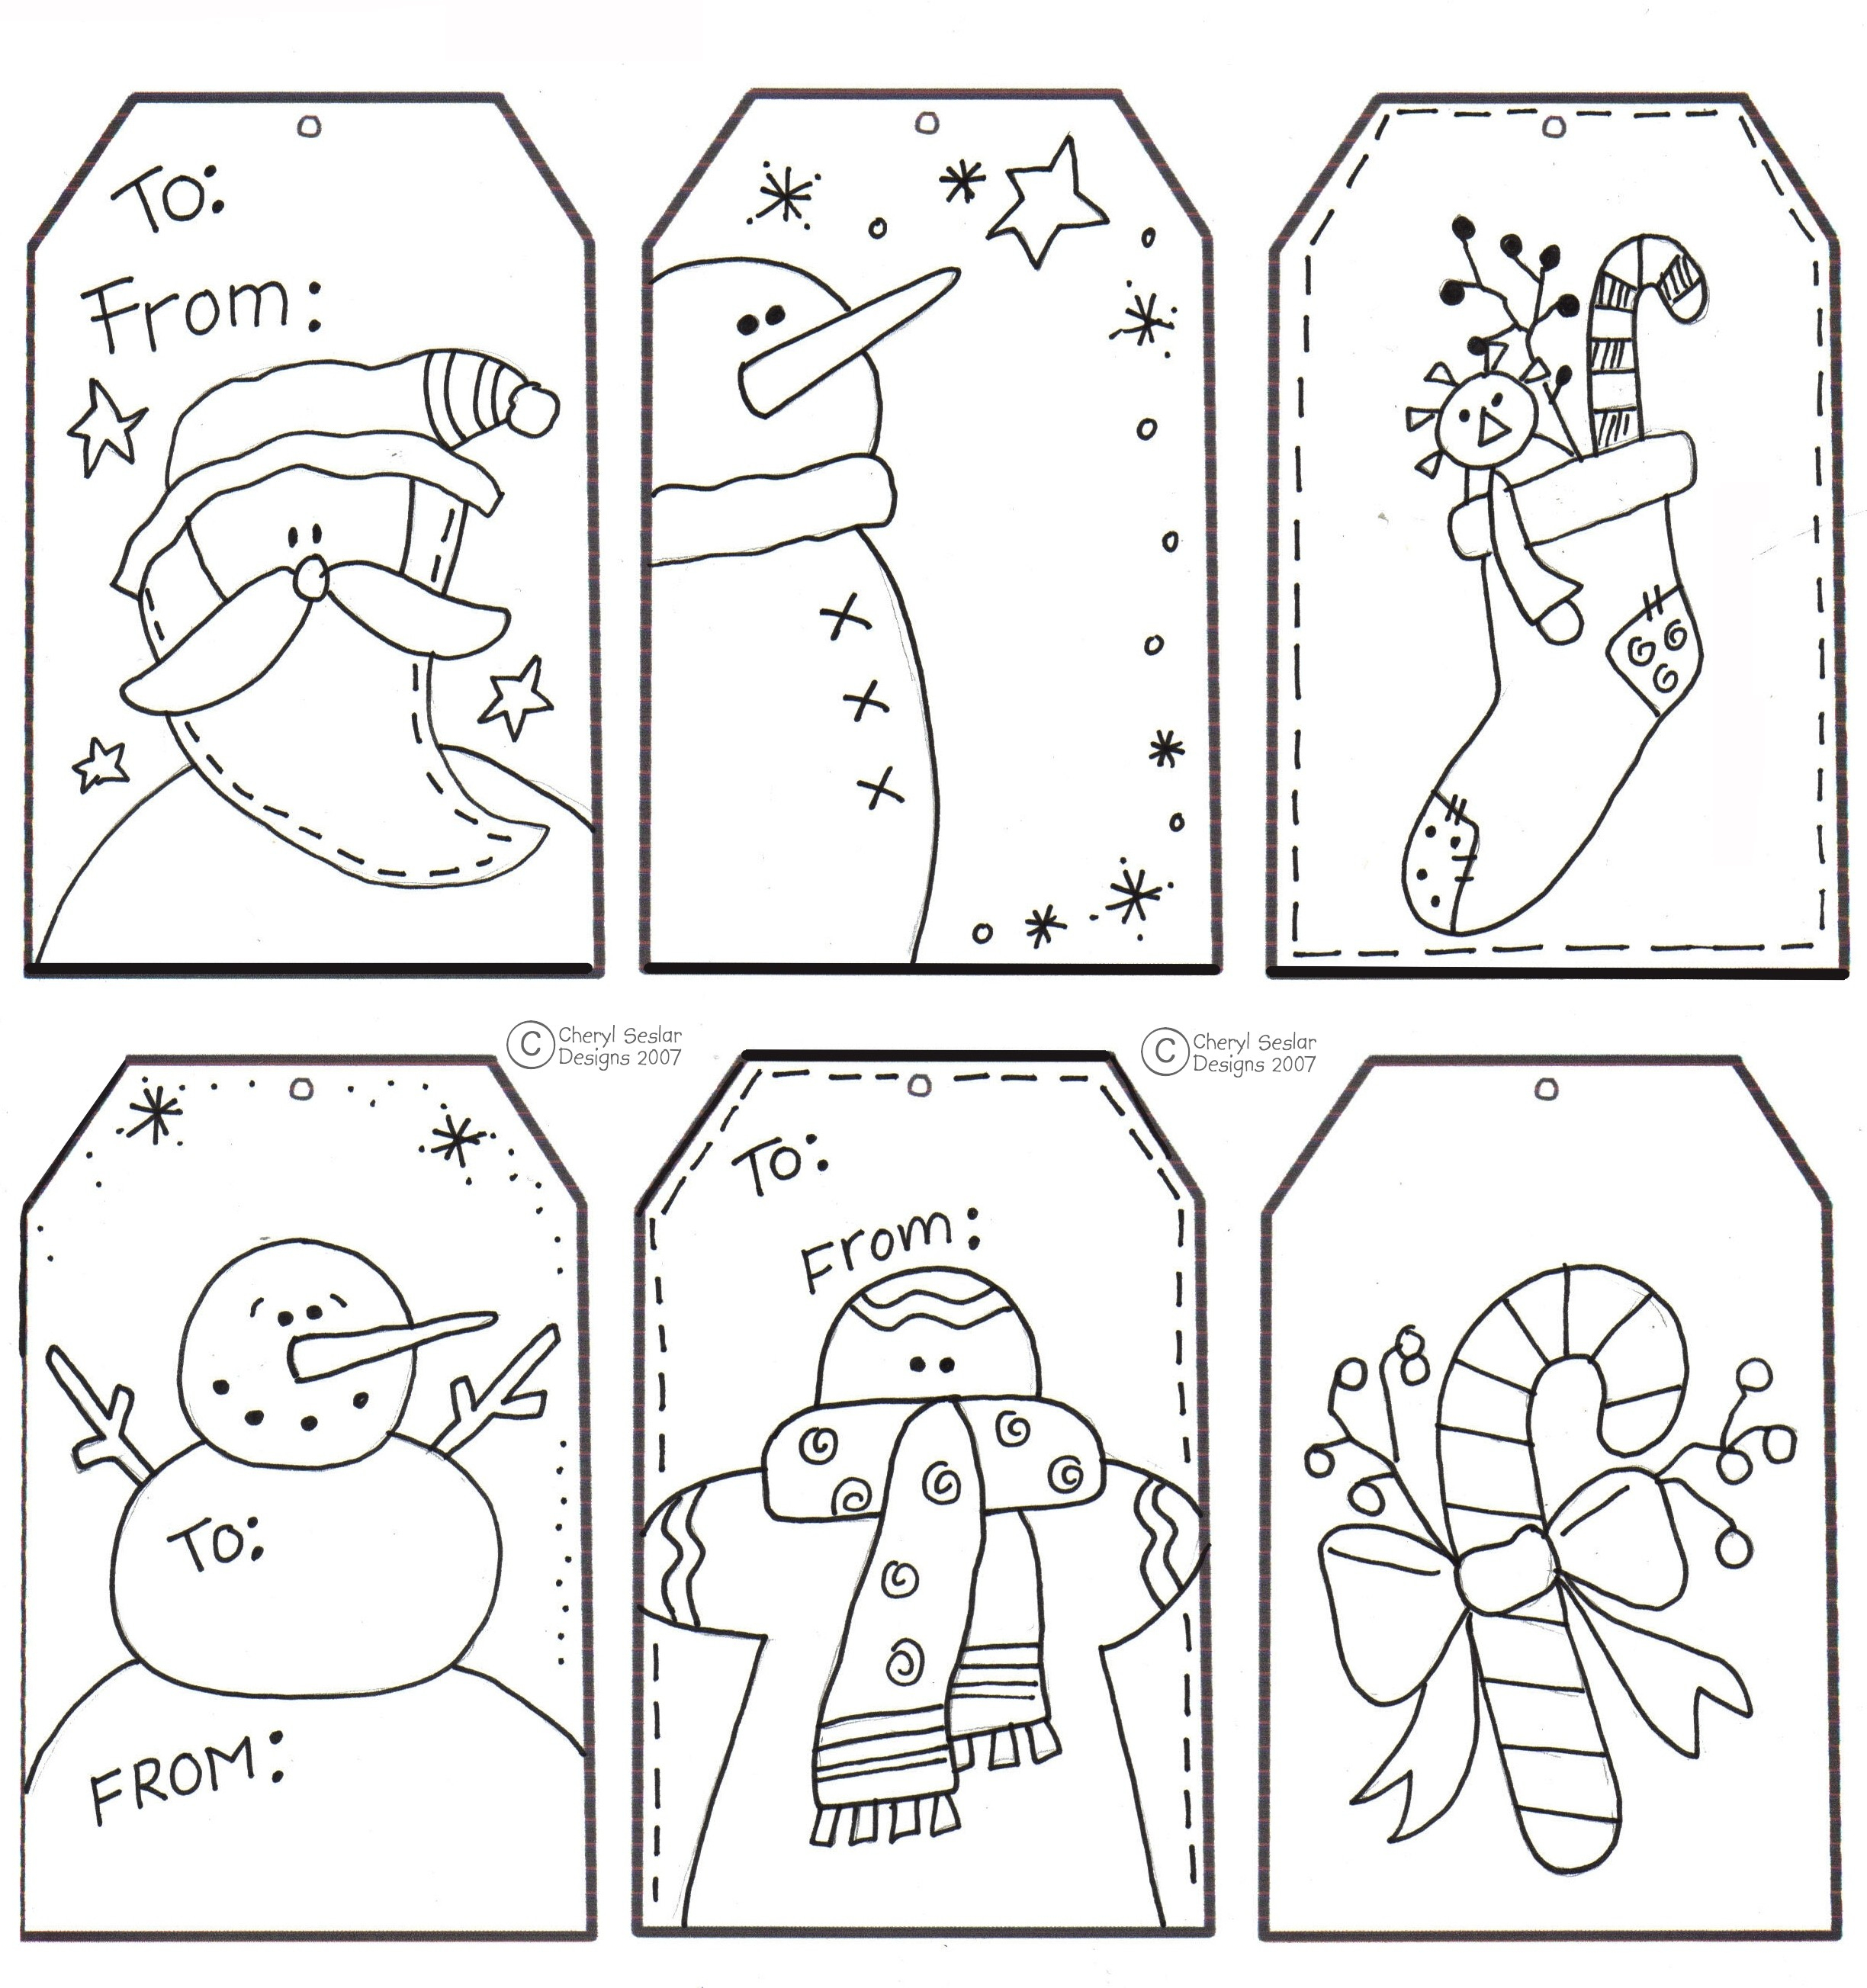 Free Printable Christmas Craft Templates – Festival Collections - Free Printable Christmas Craft Templates